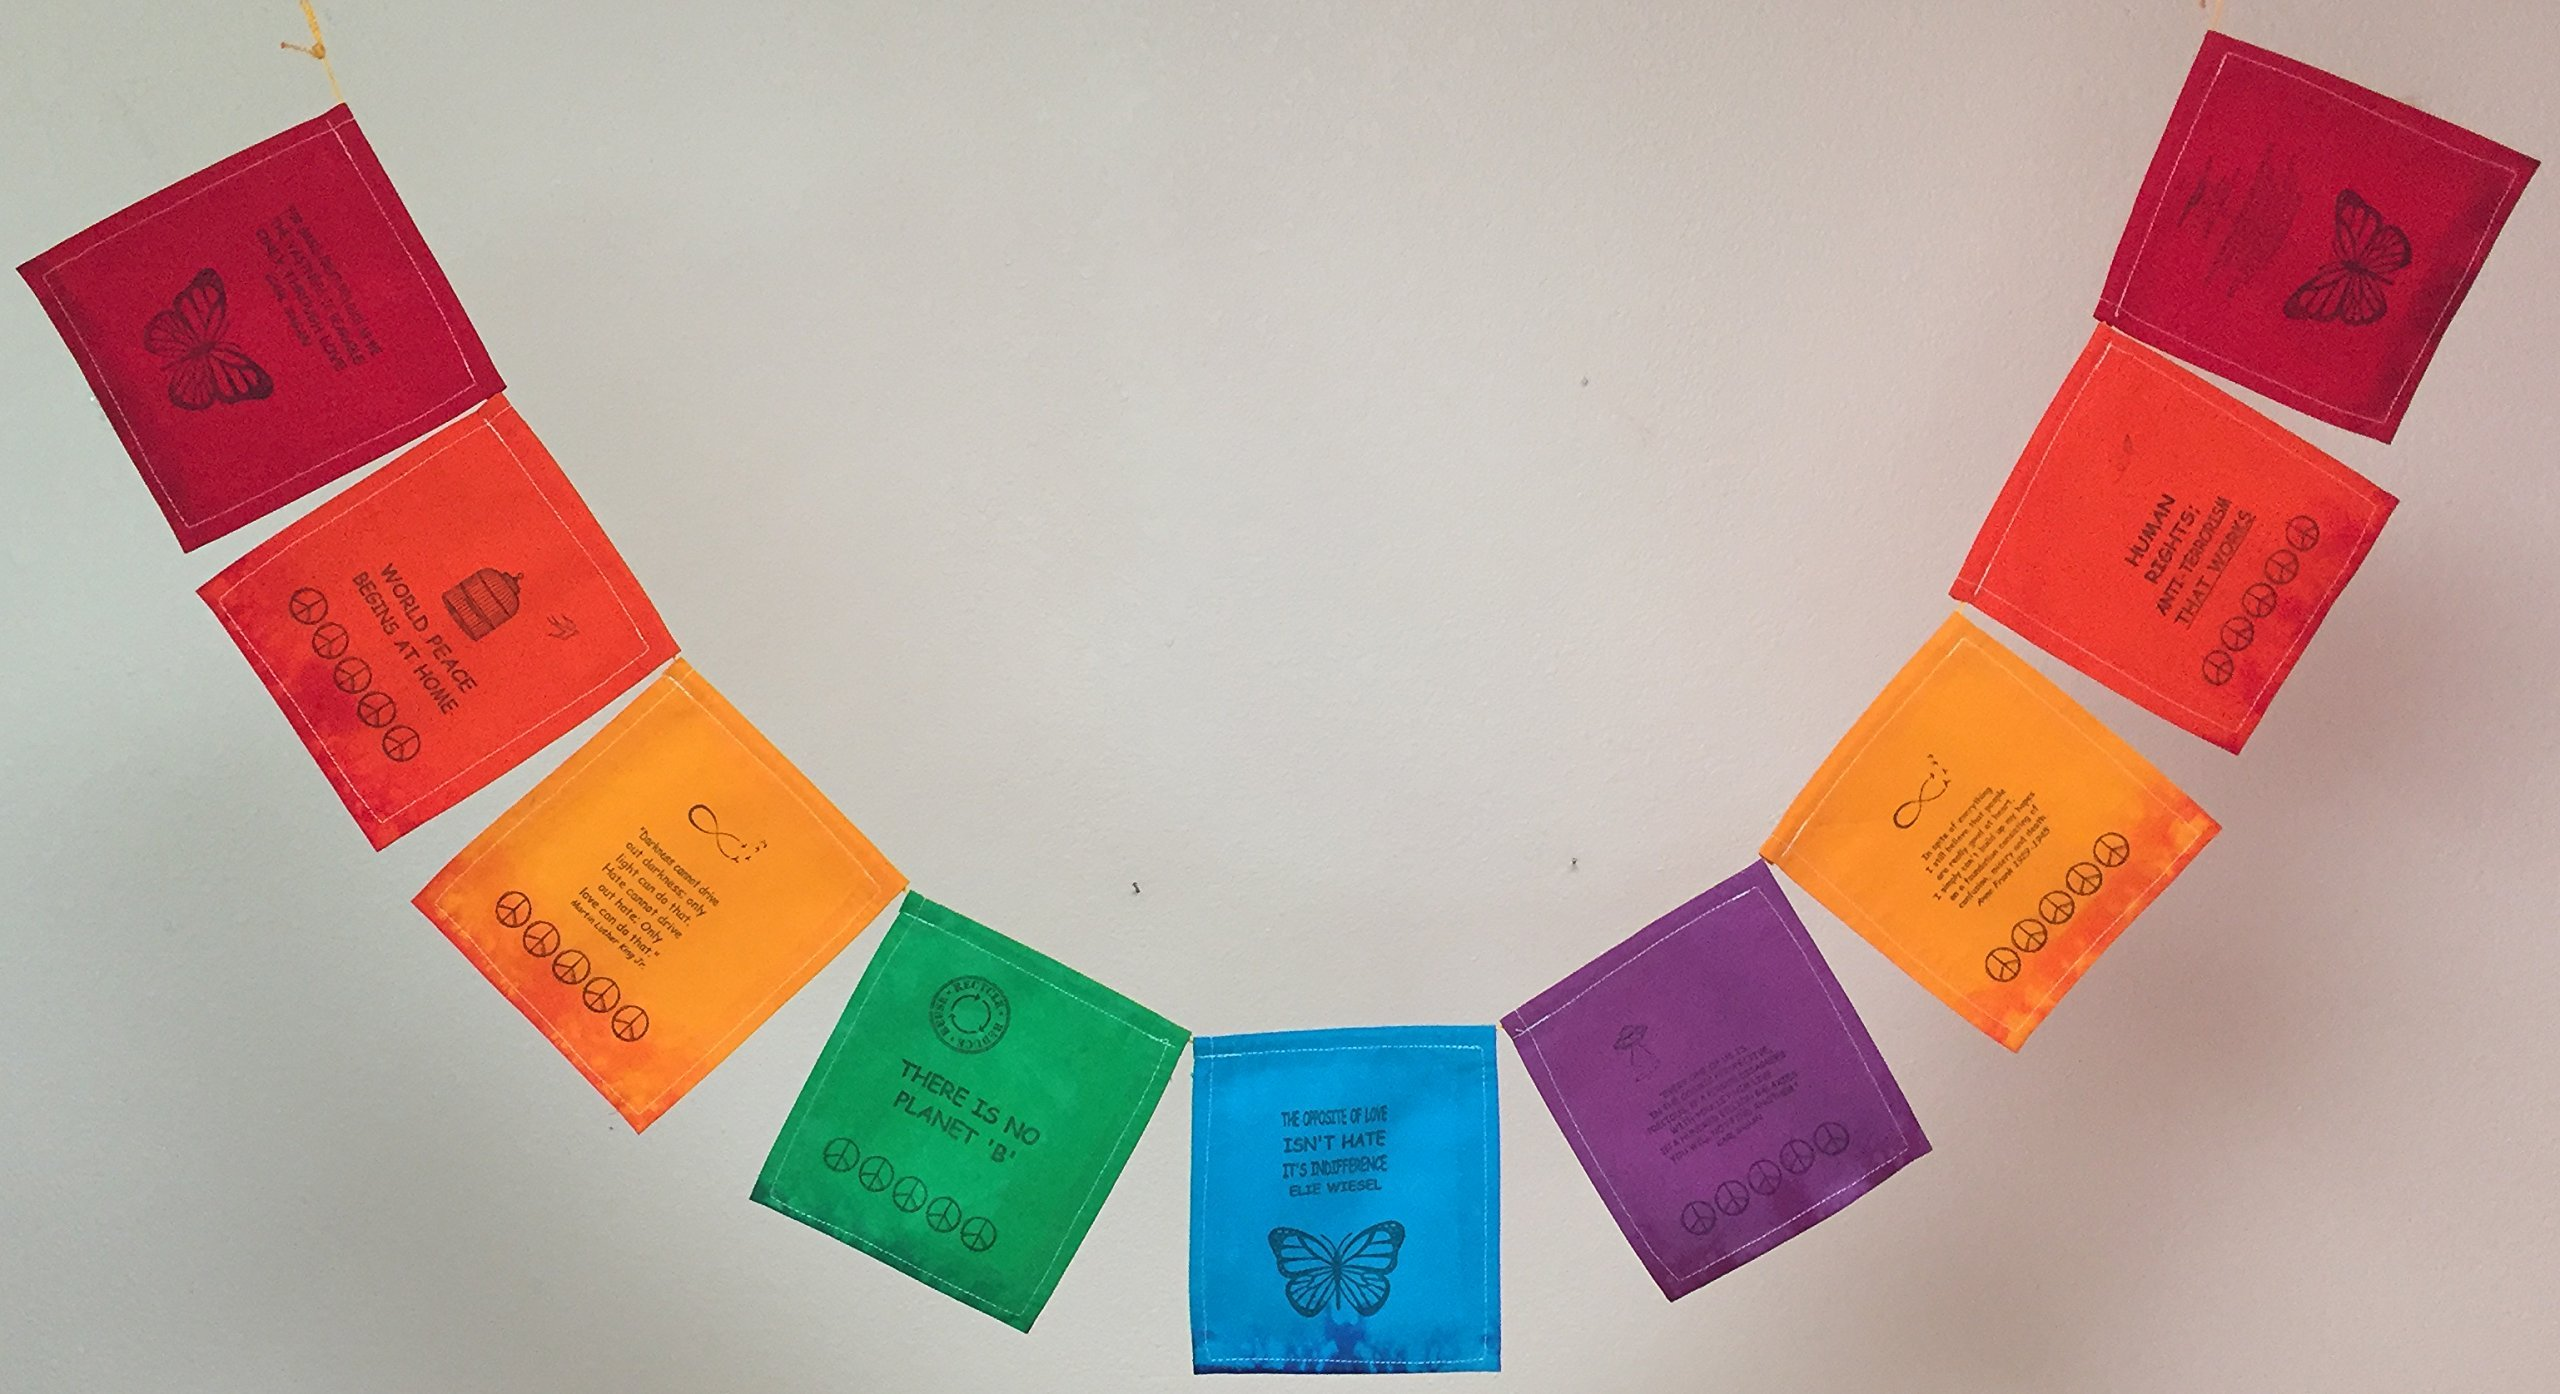 Human Rights Prayer Flag.''The opposite of love is not hate; it's indifference.'' by Guerilla Prayer Flags